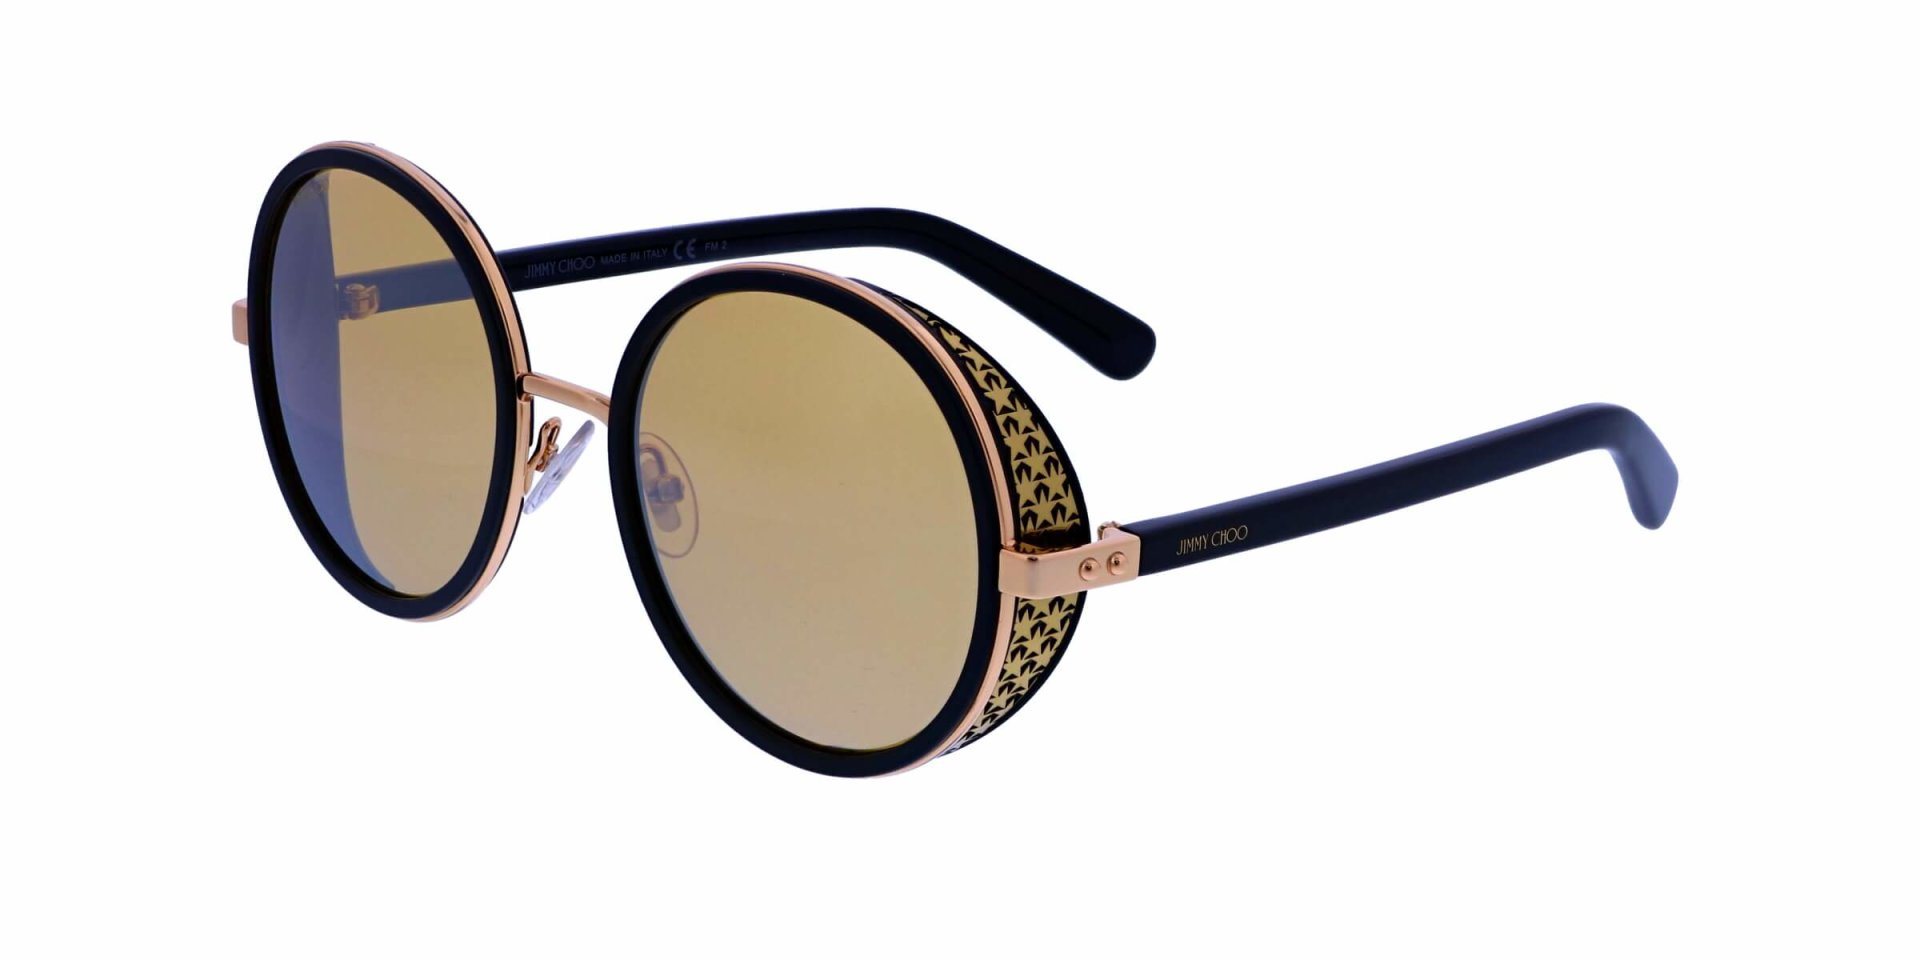 bfa5cb9c9b6f Sunglasses JIMMY CHOO | Opticlasa